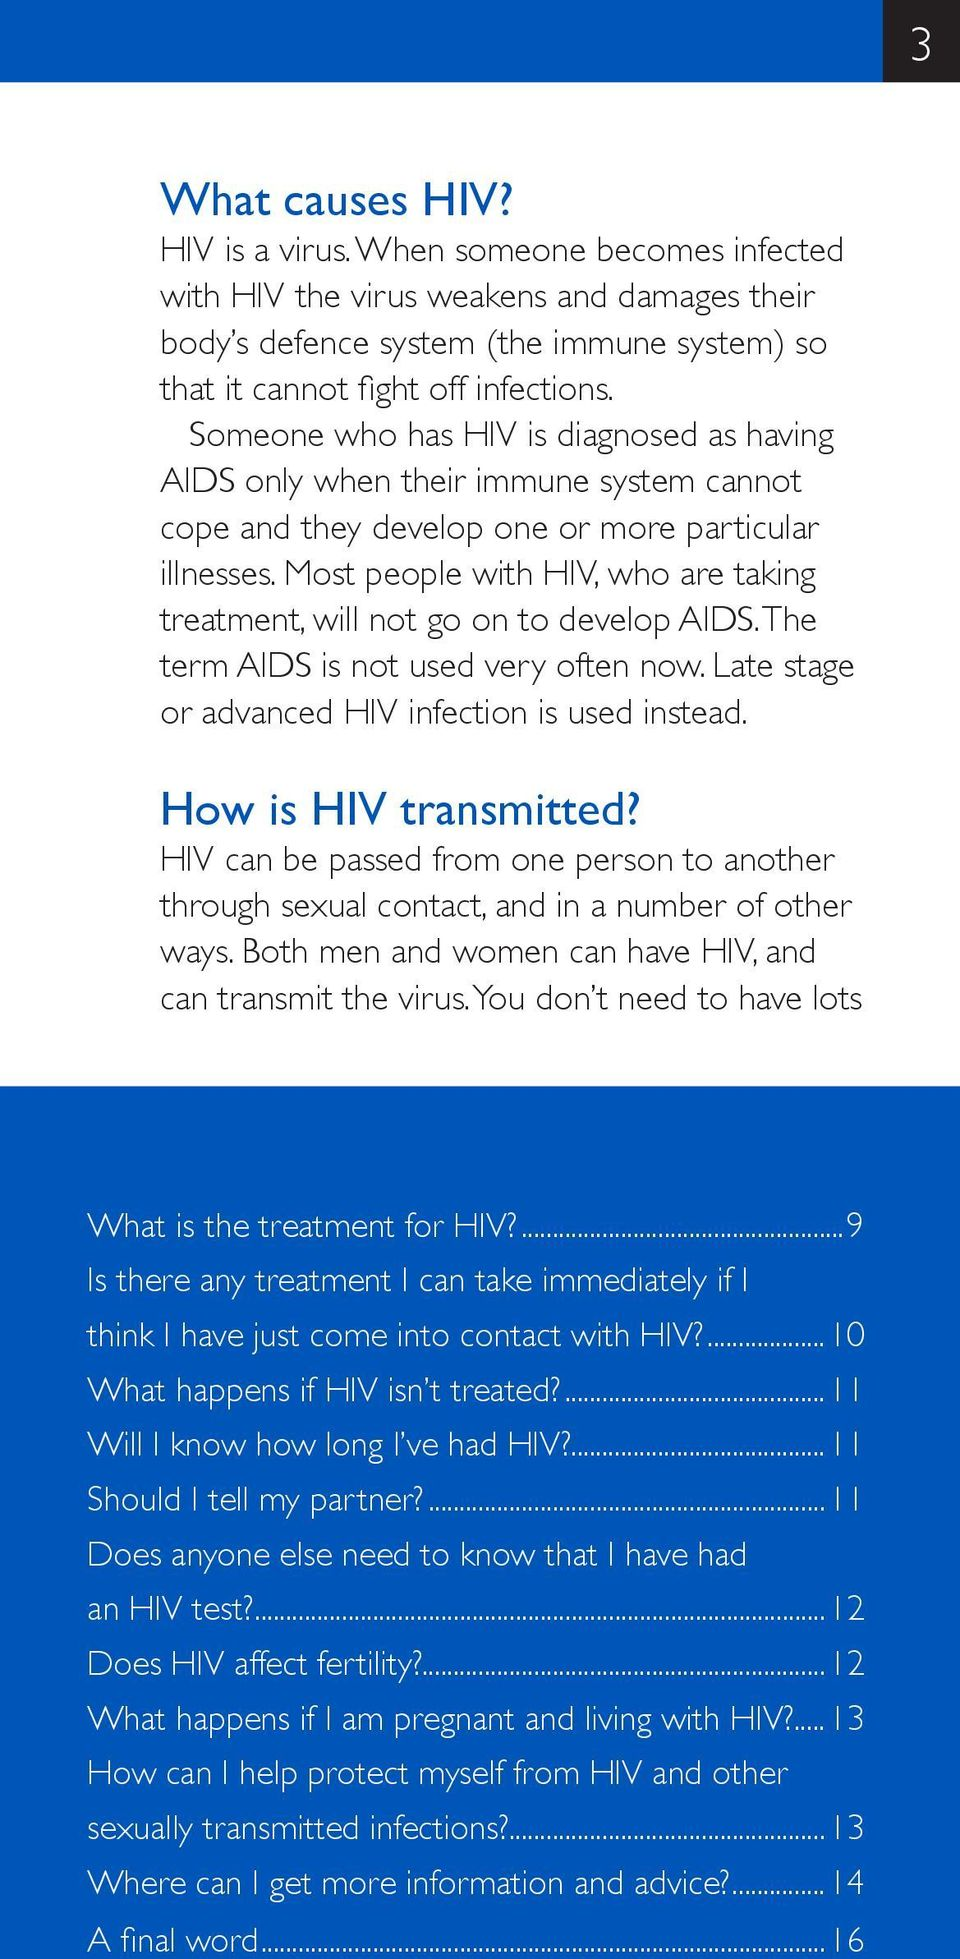 Most people with HIV, who are taking treatment, will not go on to develop AIDS. The term AIDS is not used very often now. Late stage or advanced HIV infection is used instead. How is HIV transmitted?